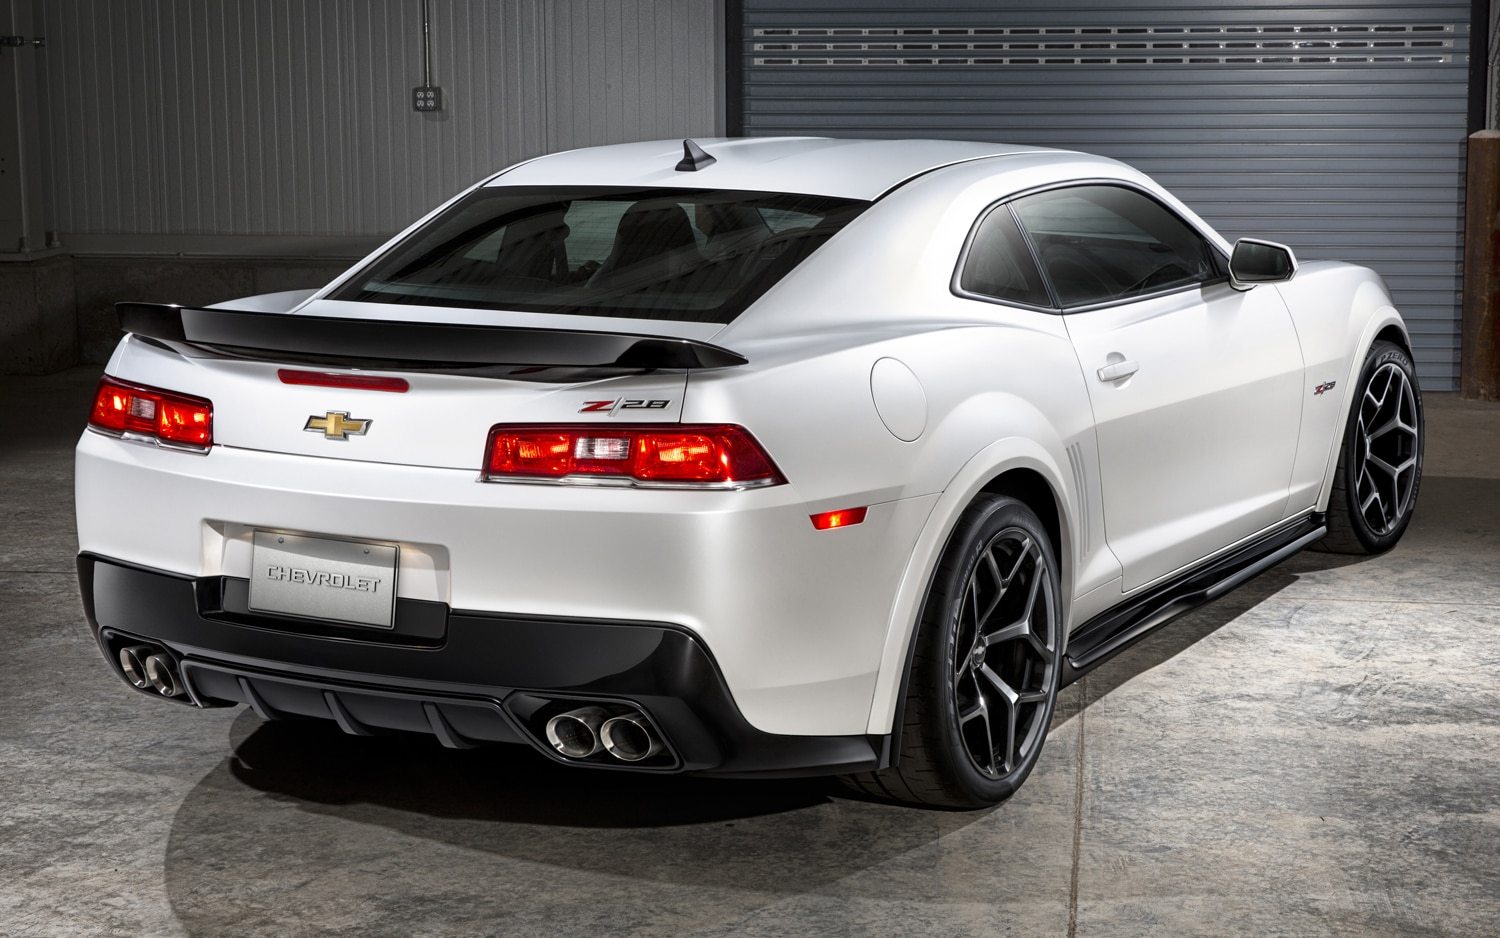 2014 Chevrolet Camaro Z/28 revealed!